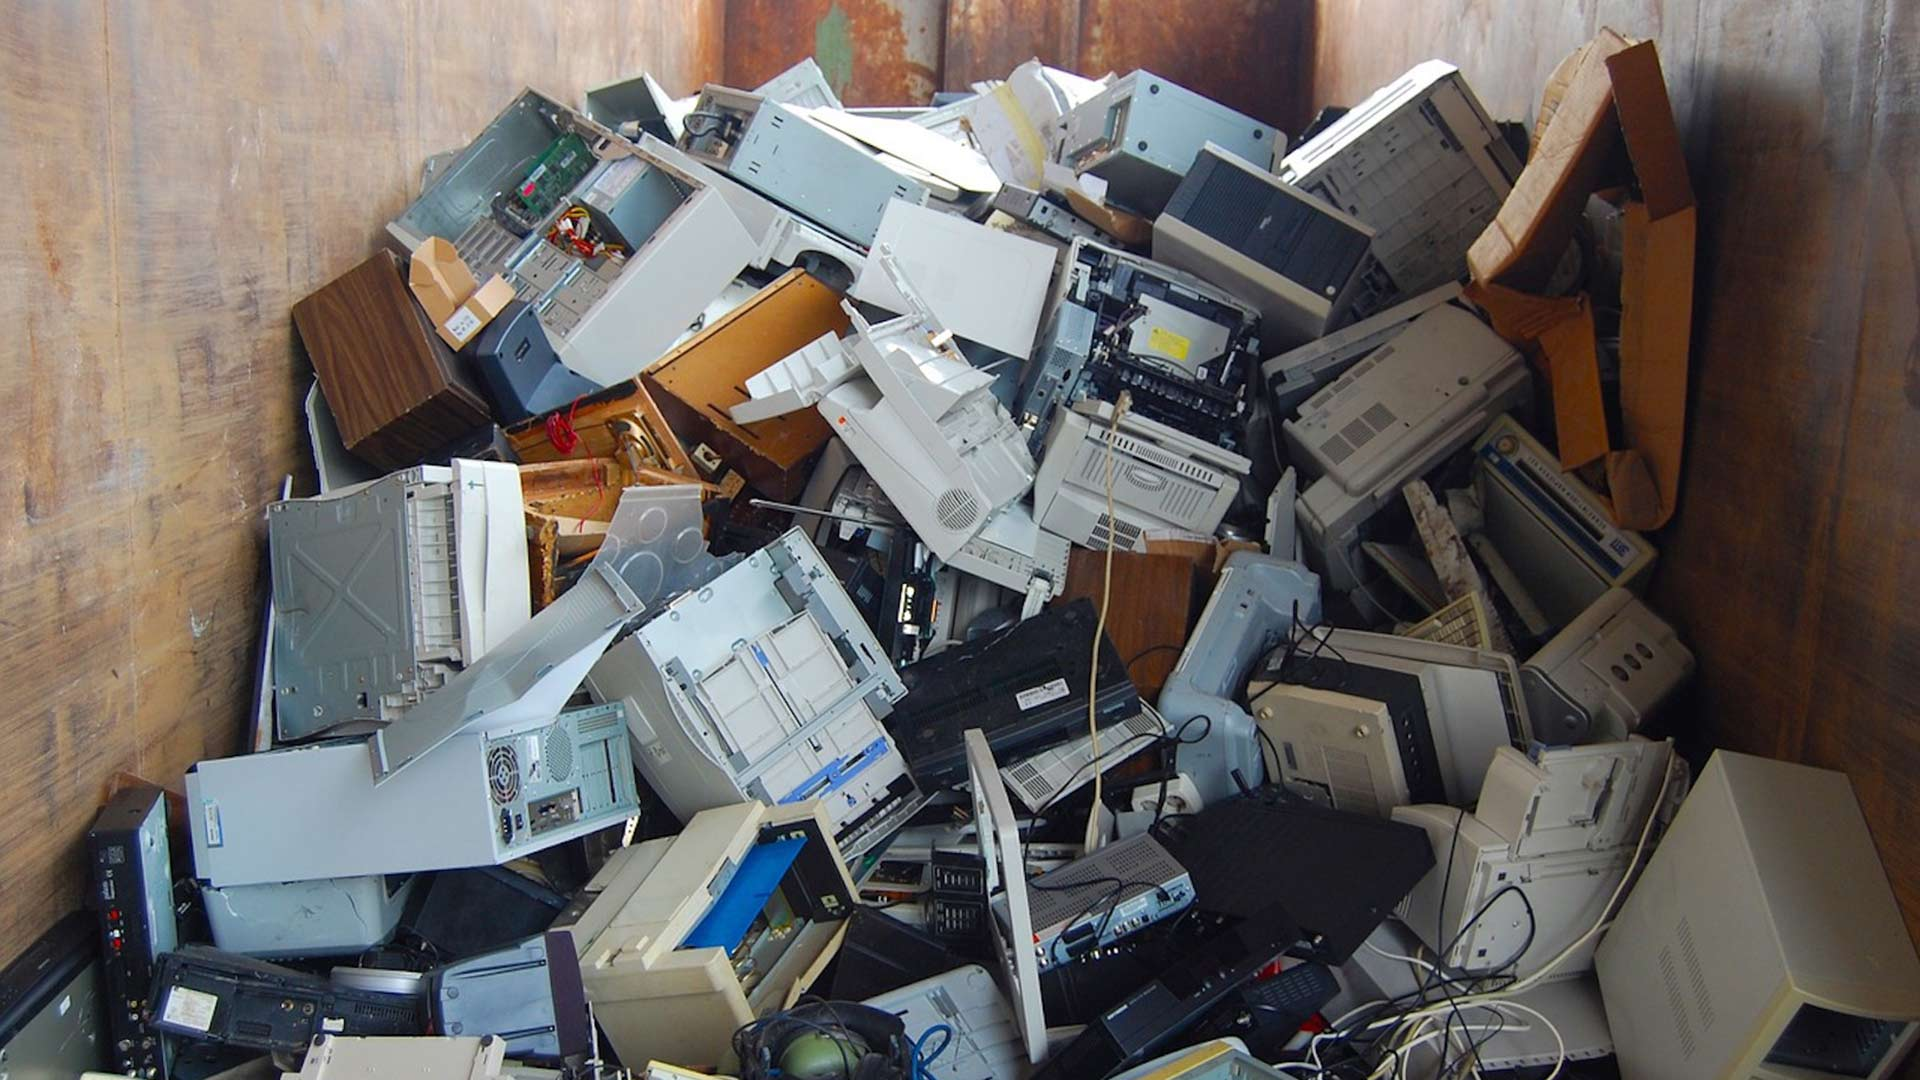 Old computers, cell phones, televisions and printers are electronic items that can be recycled instead of deposited in landfills.